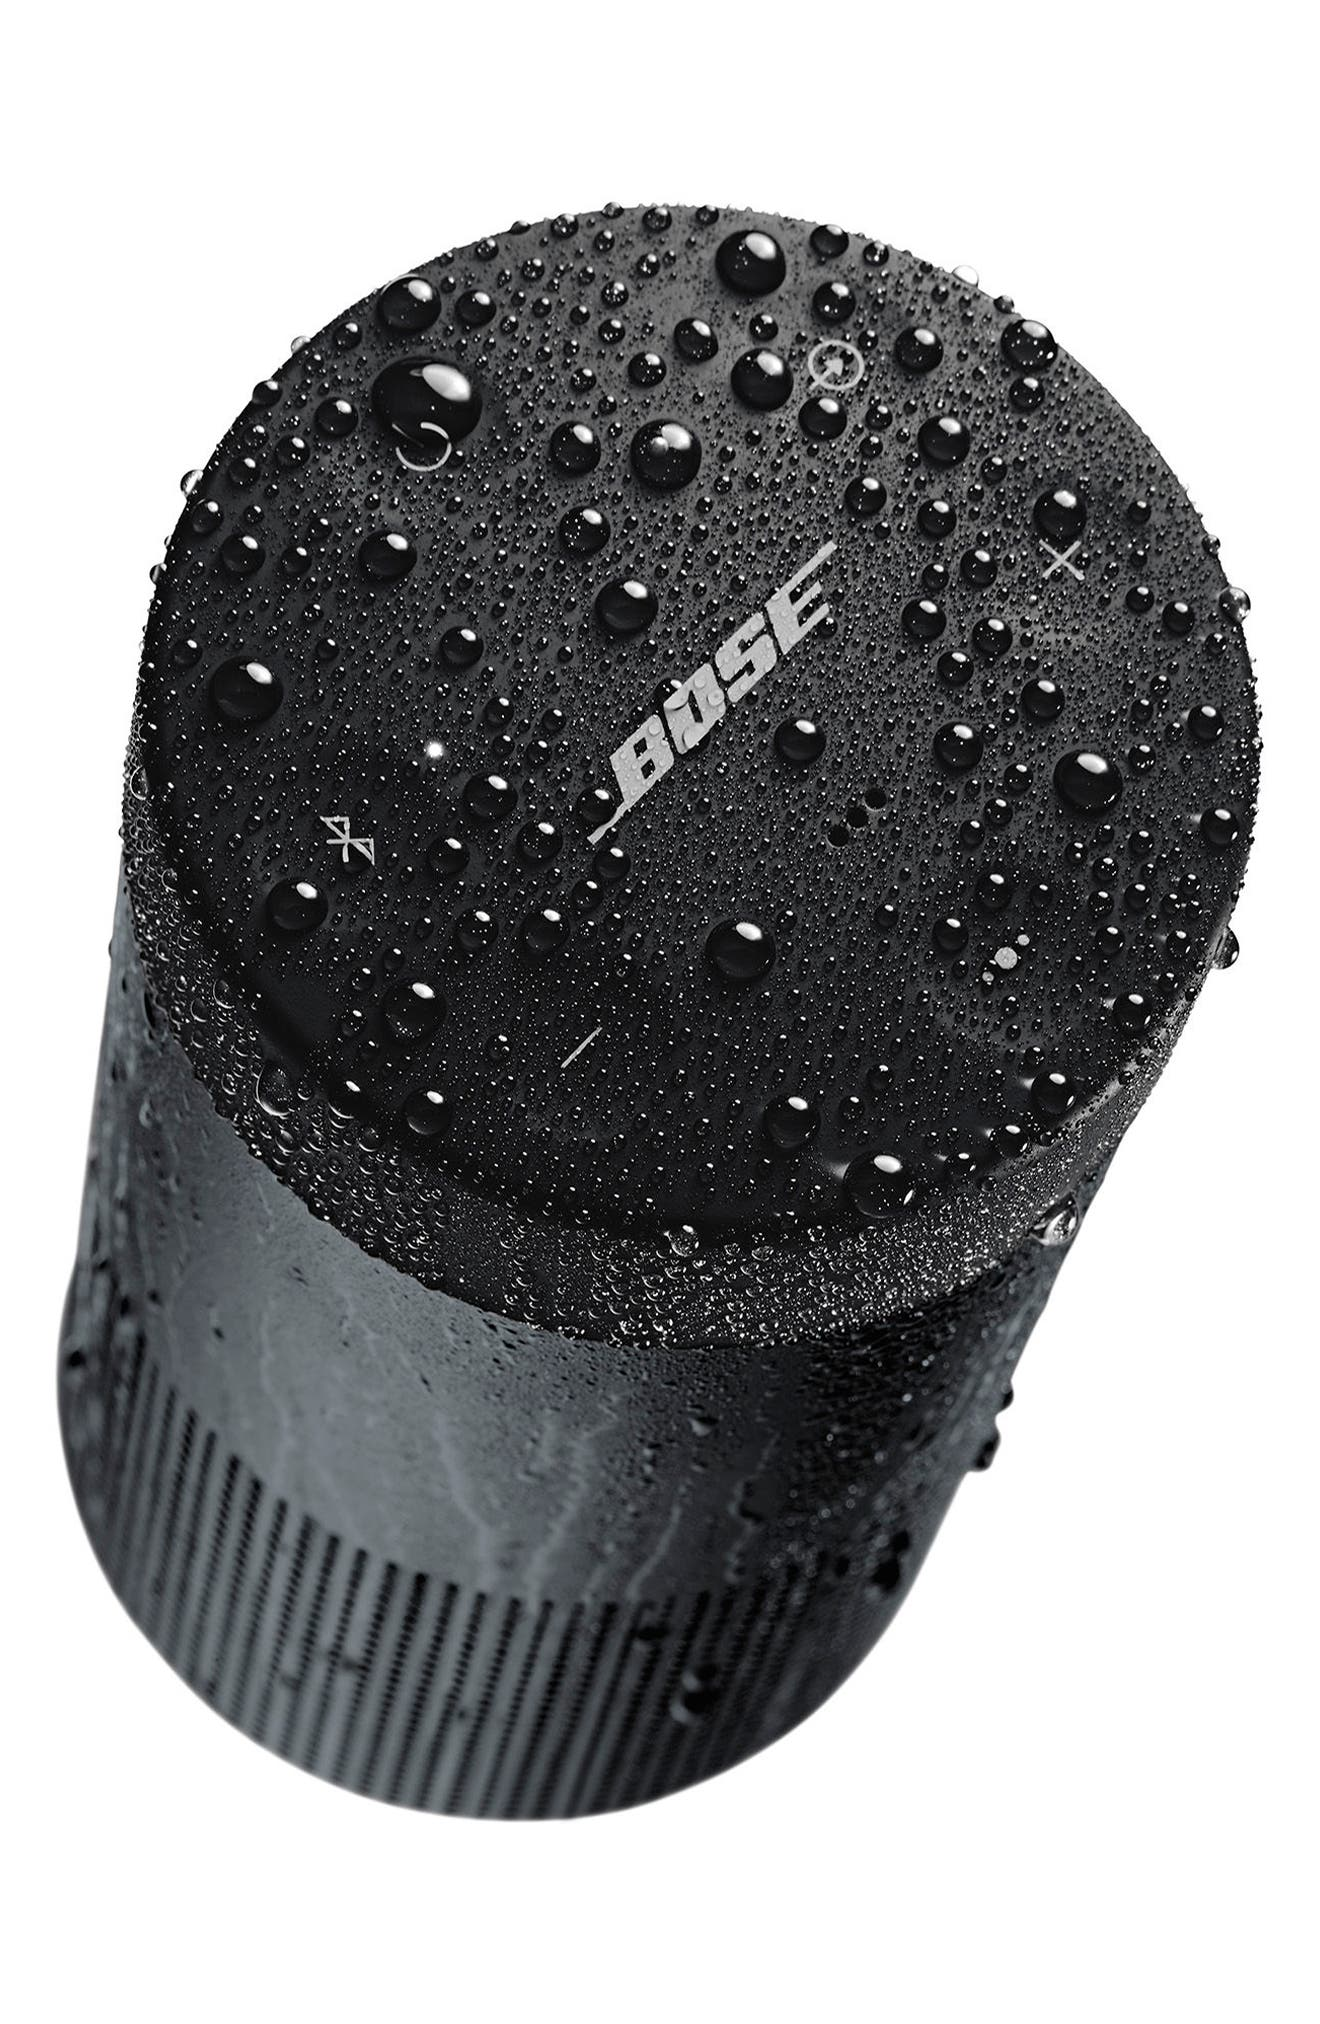 SoundLink<sup>®</sup> Revolve Bluetooth<sup>®</sup> Speaker,                             Alternate thumbnail 7, color,                             BLACK